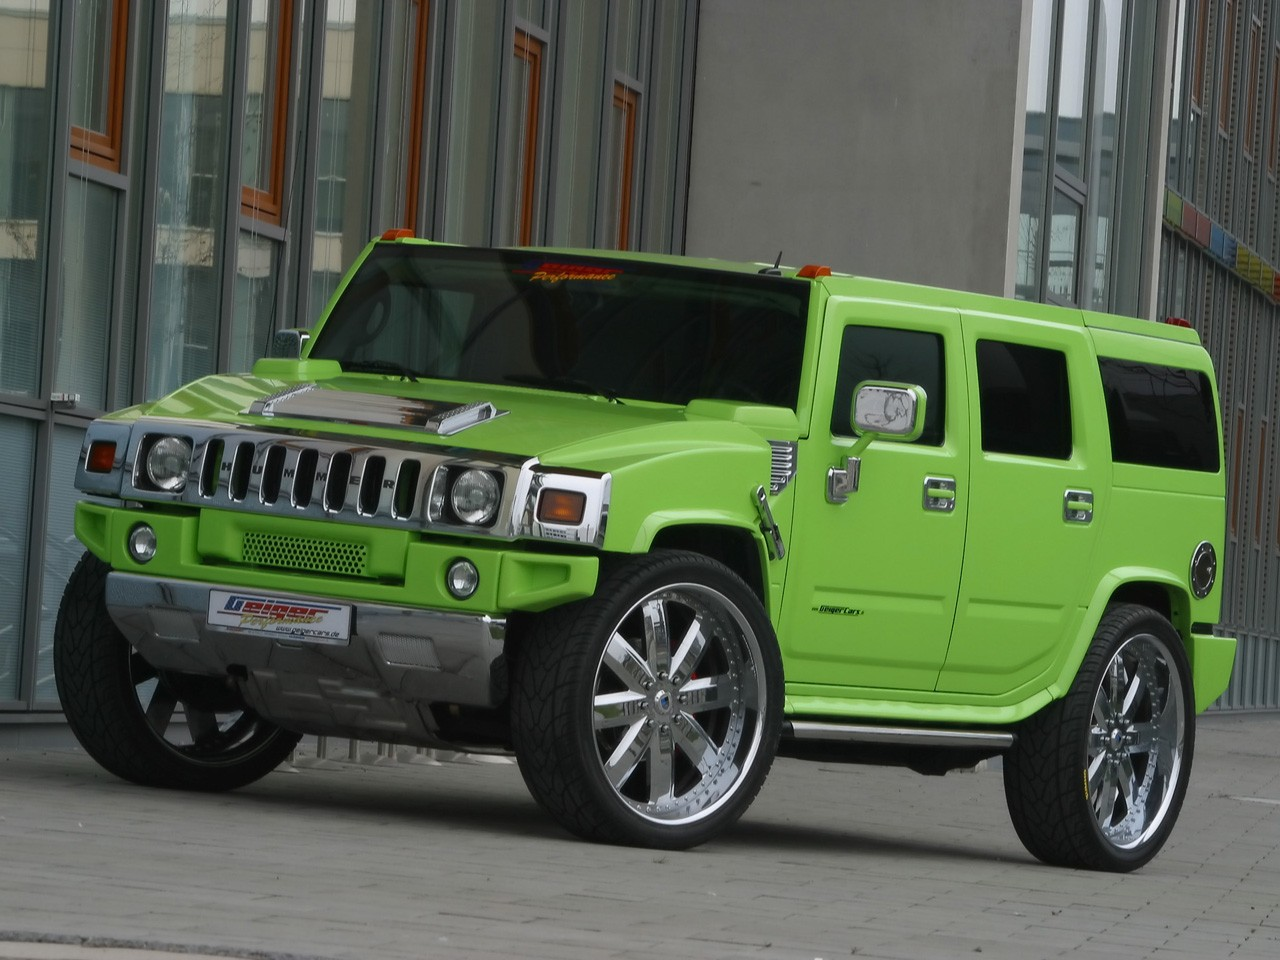 2005 Geigercars - Hummer H2 Maximum Green Kompressor